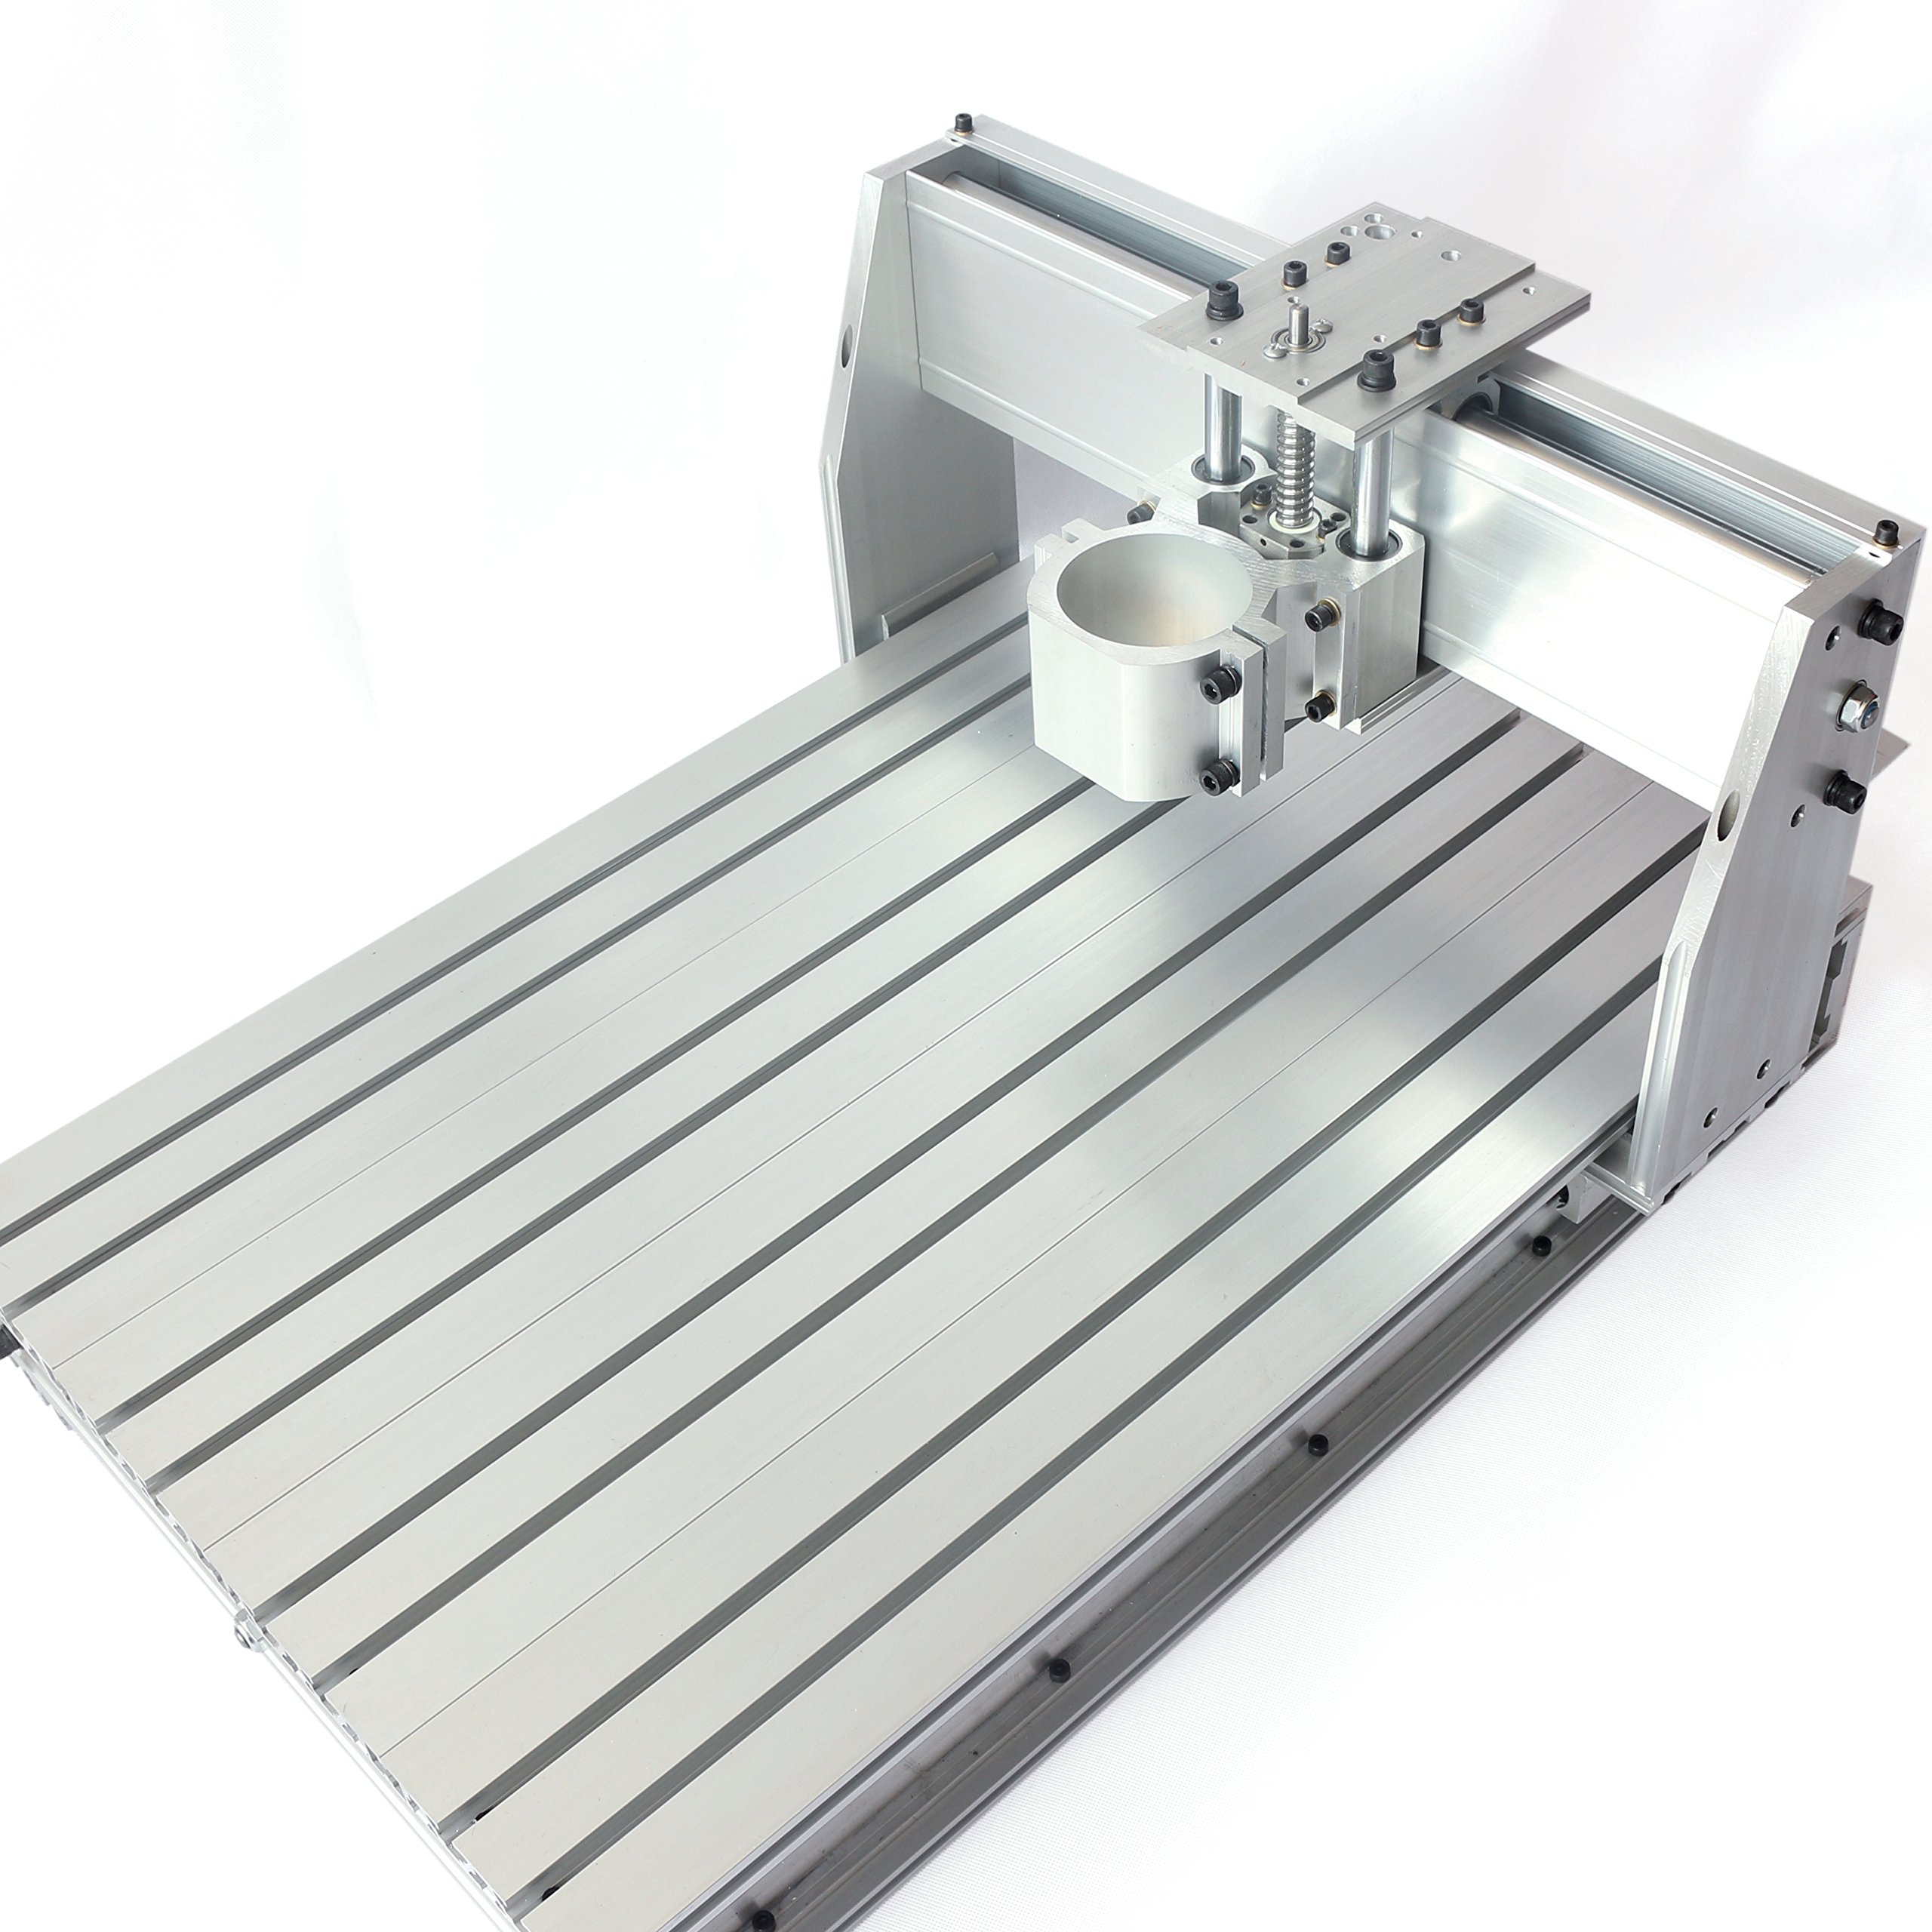 6040 CNC Router Frame Milling Machine Mechanical Kit Ball Screw Aluminum Clamp Can Interchangeable 80mm【 For small and medium-sized processing 】